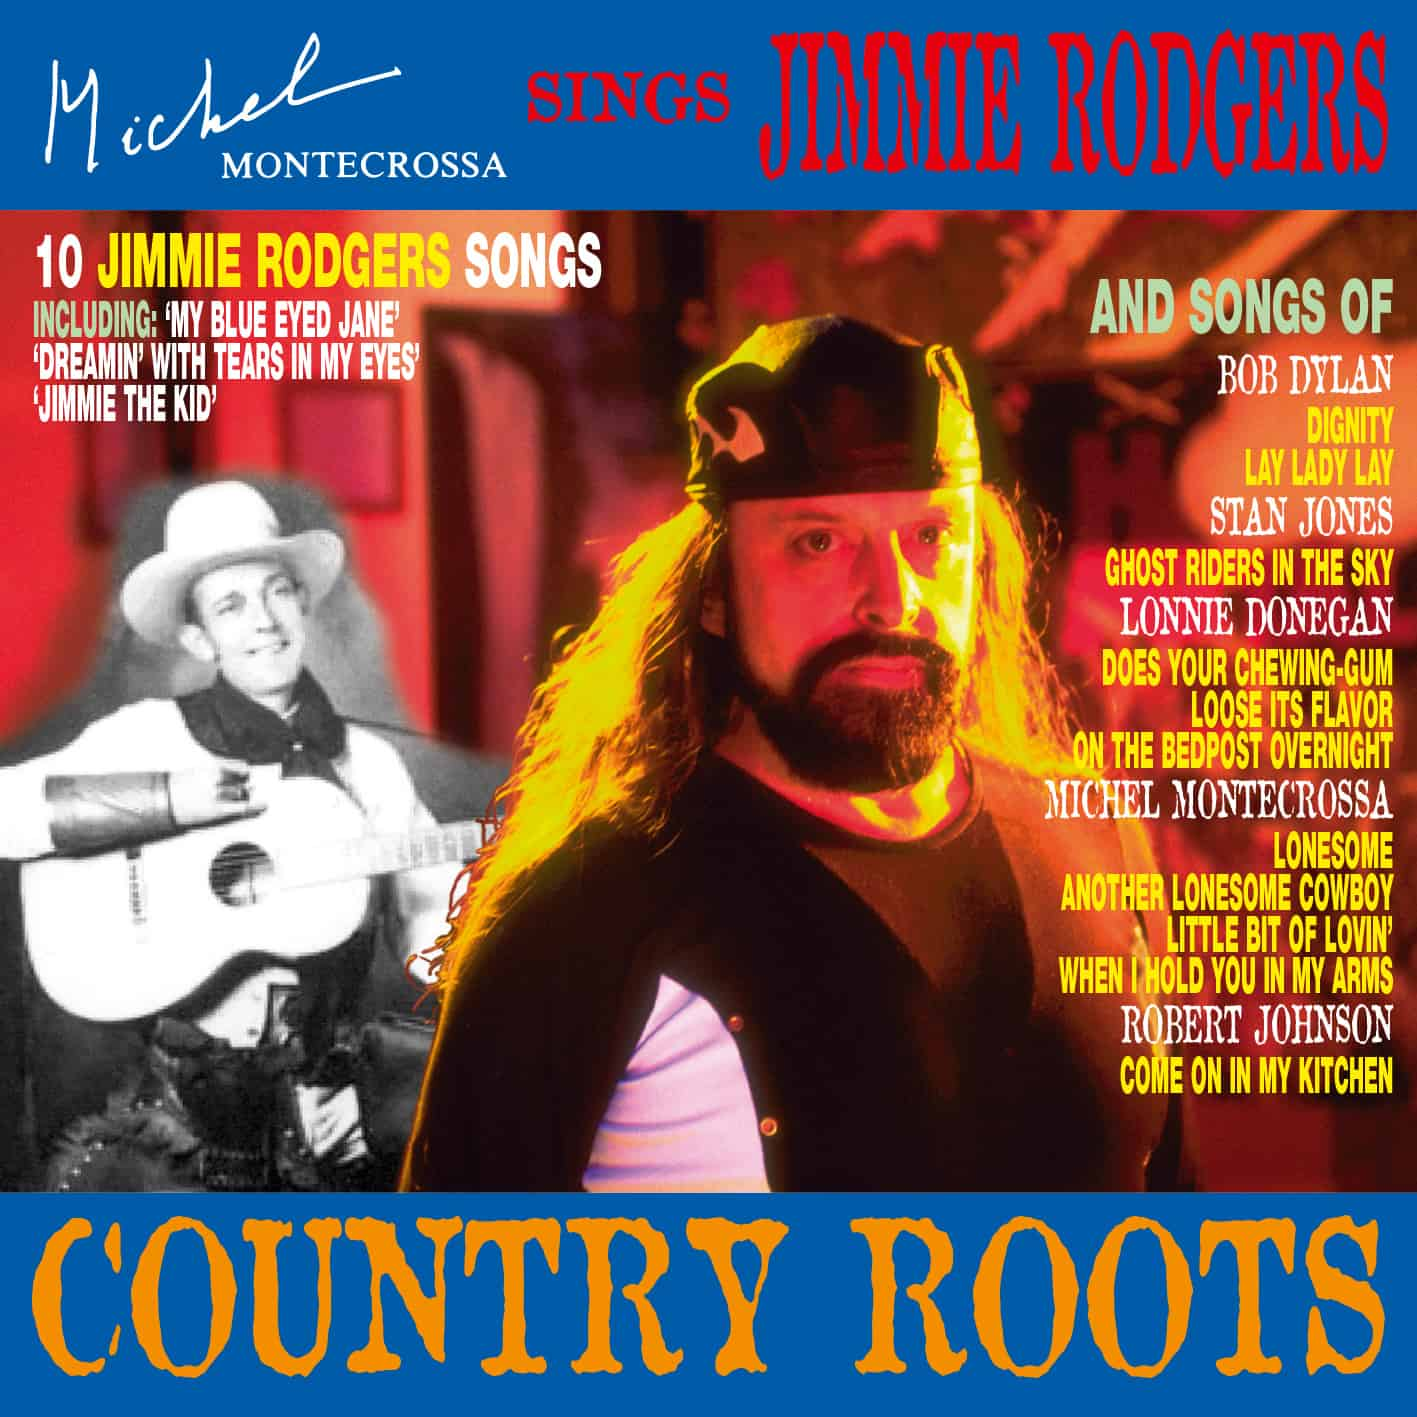 Album: Country Roots – Michel Montecrossa sings Jimmie Rodgers